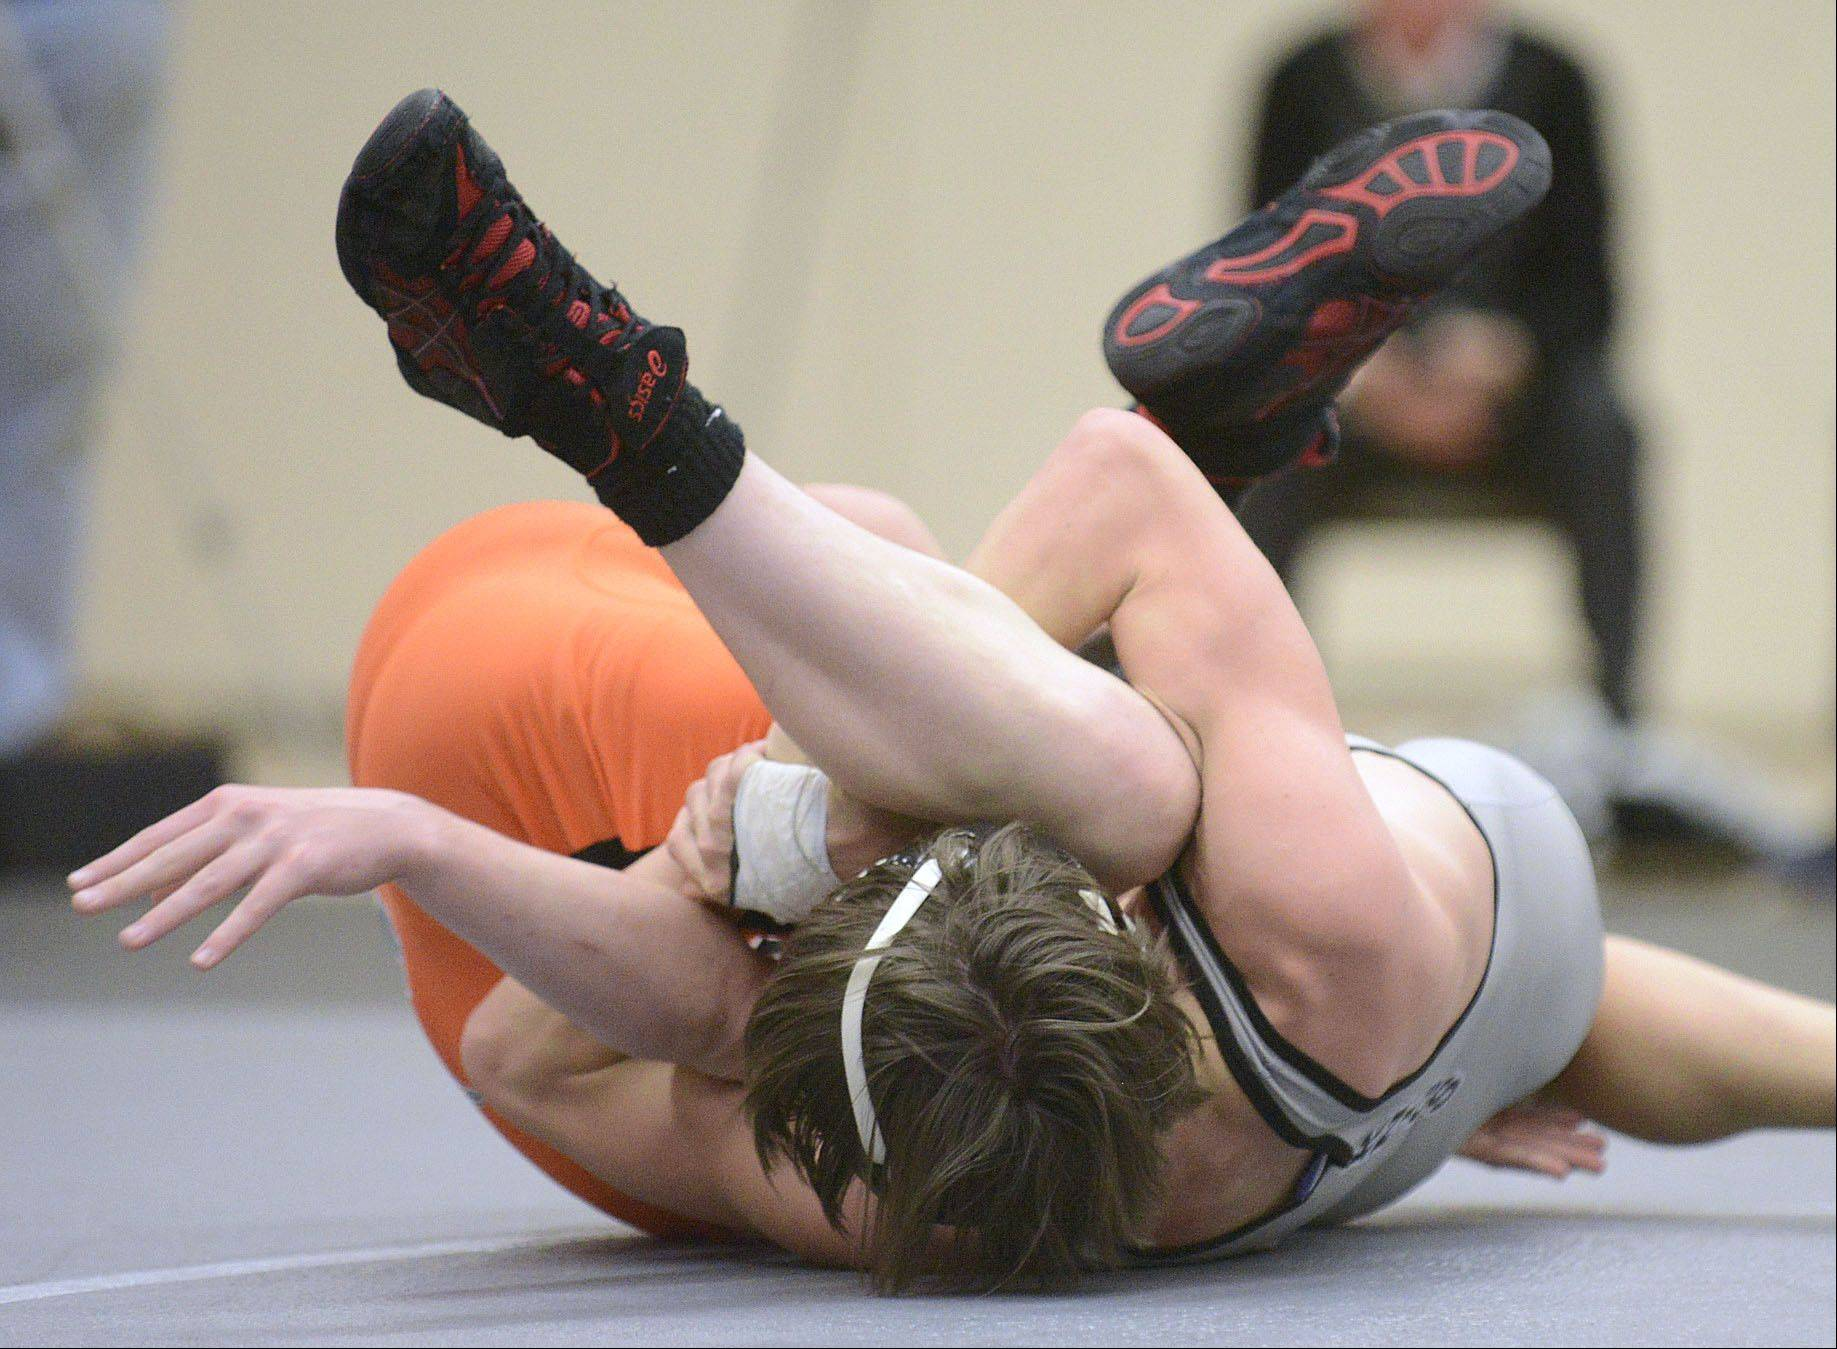 Kaneland's Nick Mish takes DeKalb's Alex Irick in the 106 pound match on Thursday, December 12.